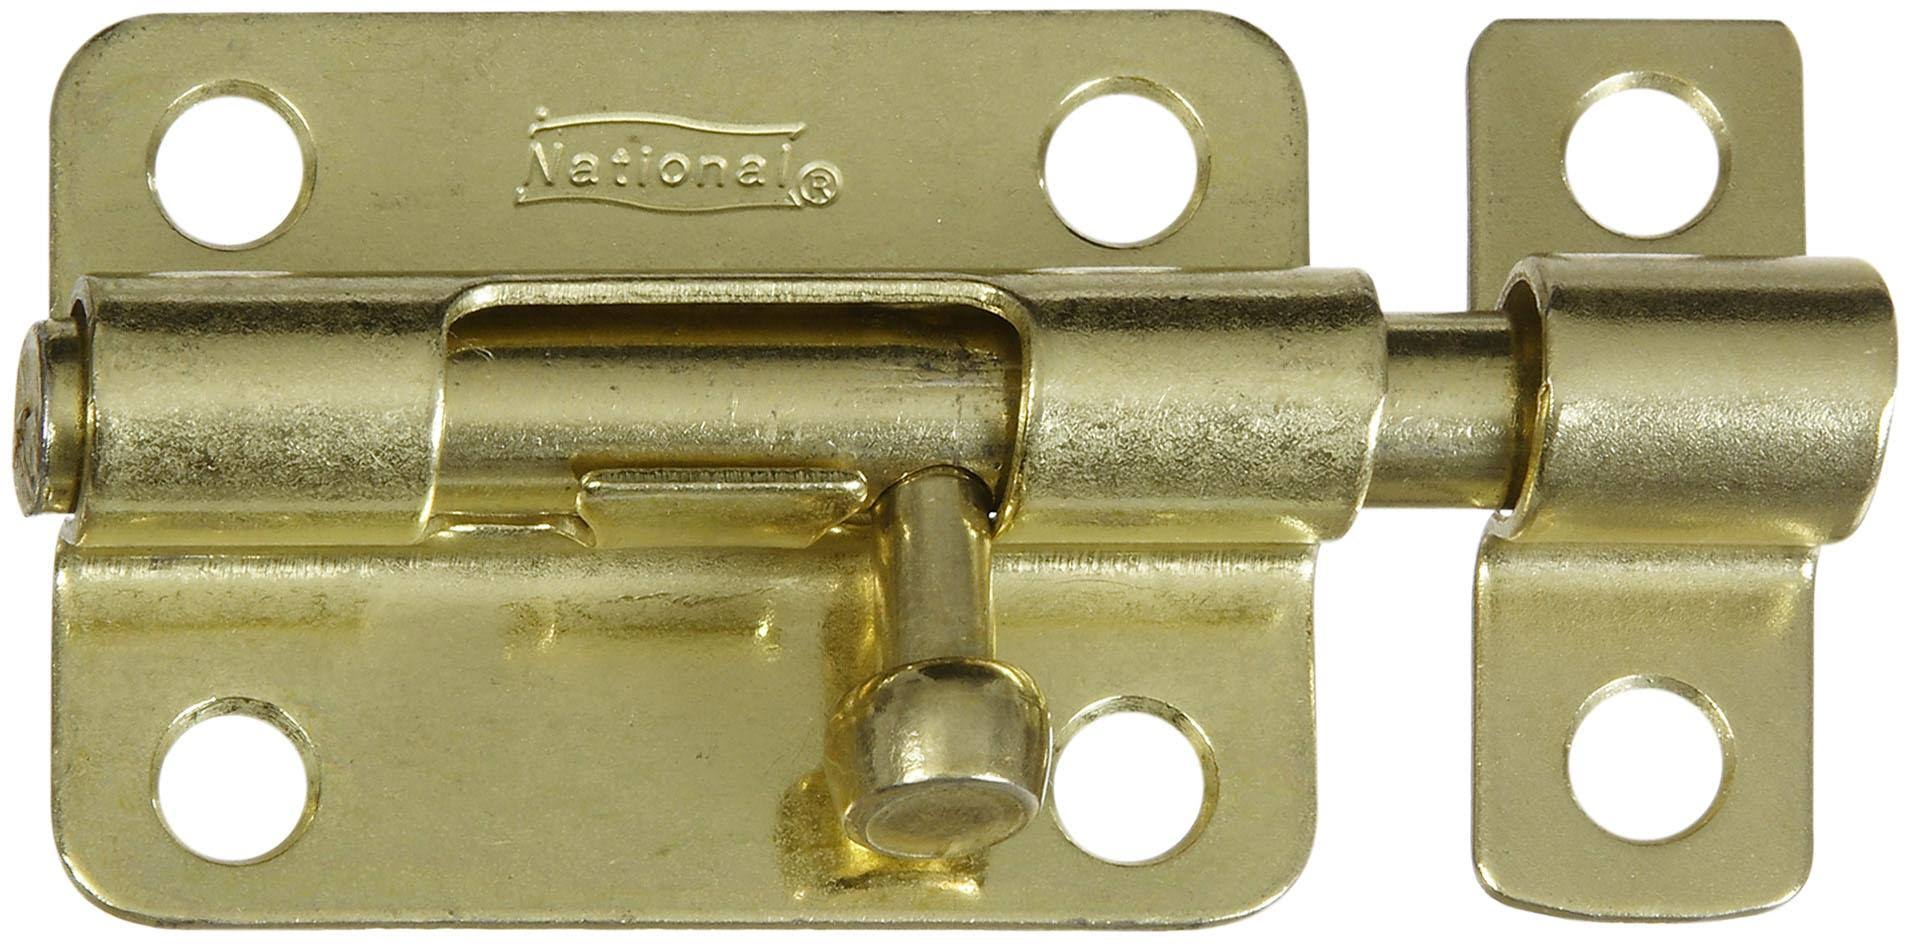 National Hardware Barrel Bolt - Brass